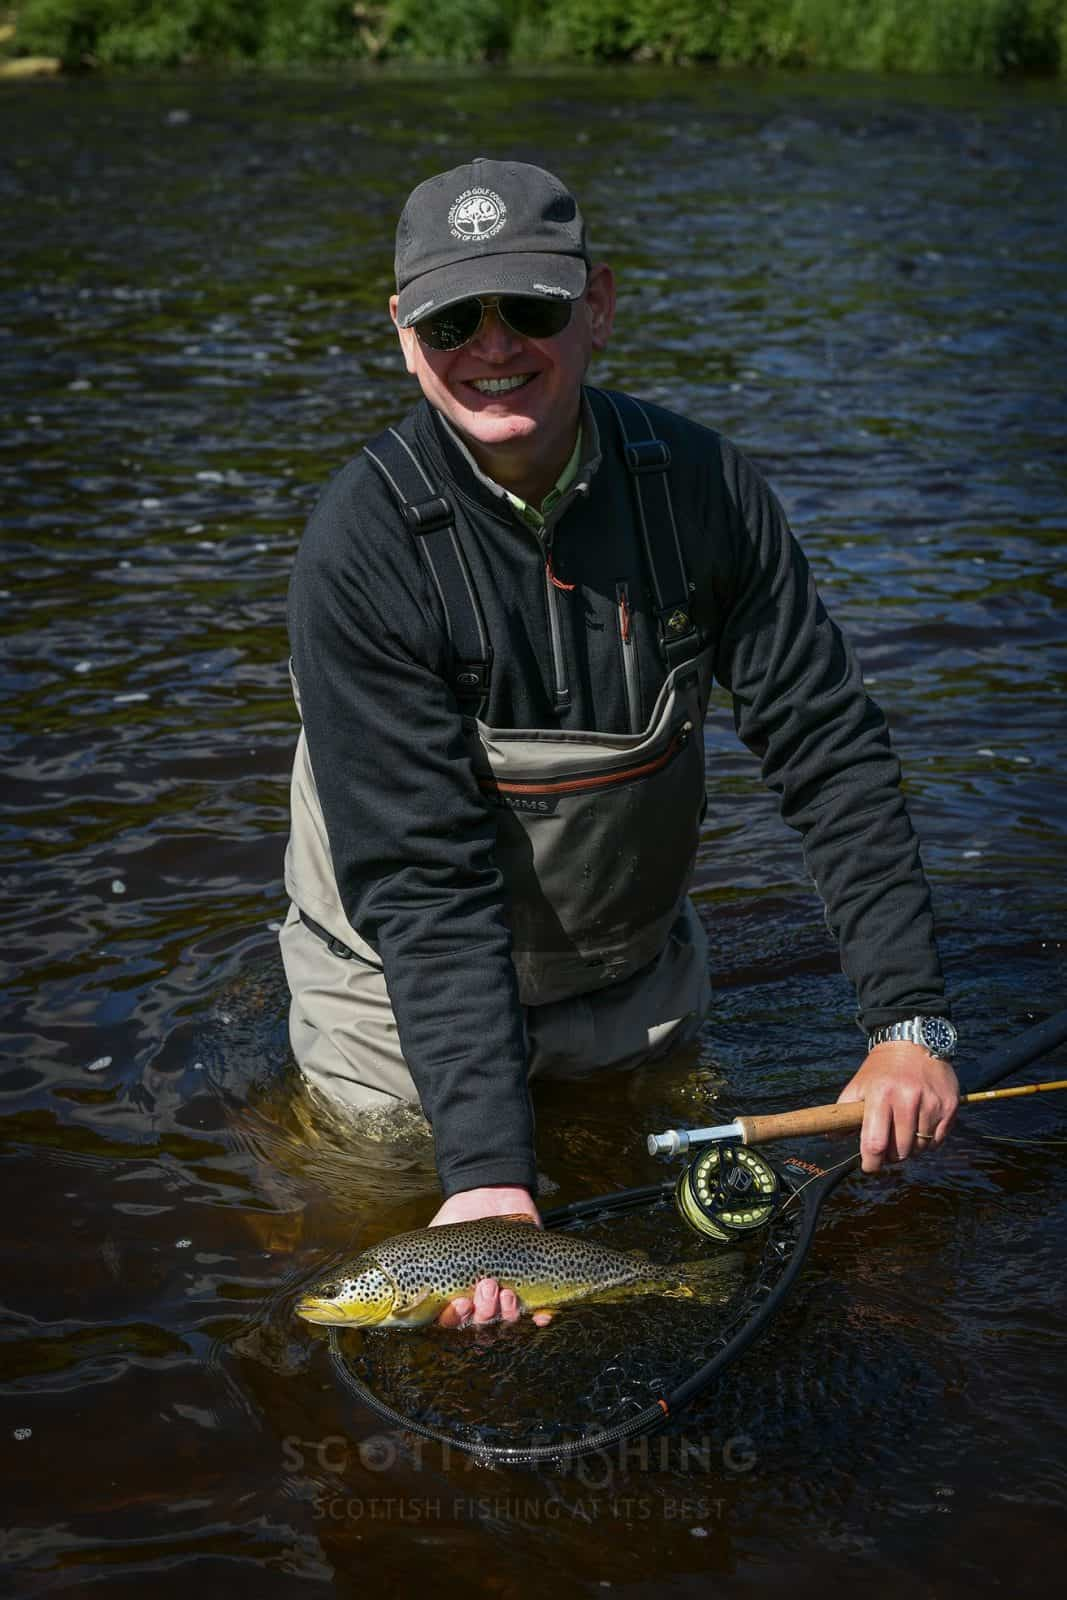 spring-summer-fishing-scotland-09